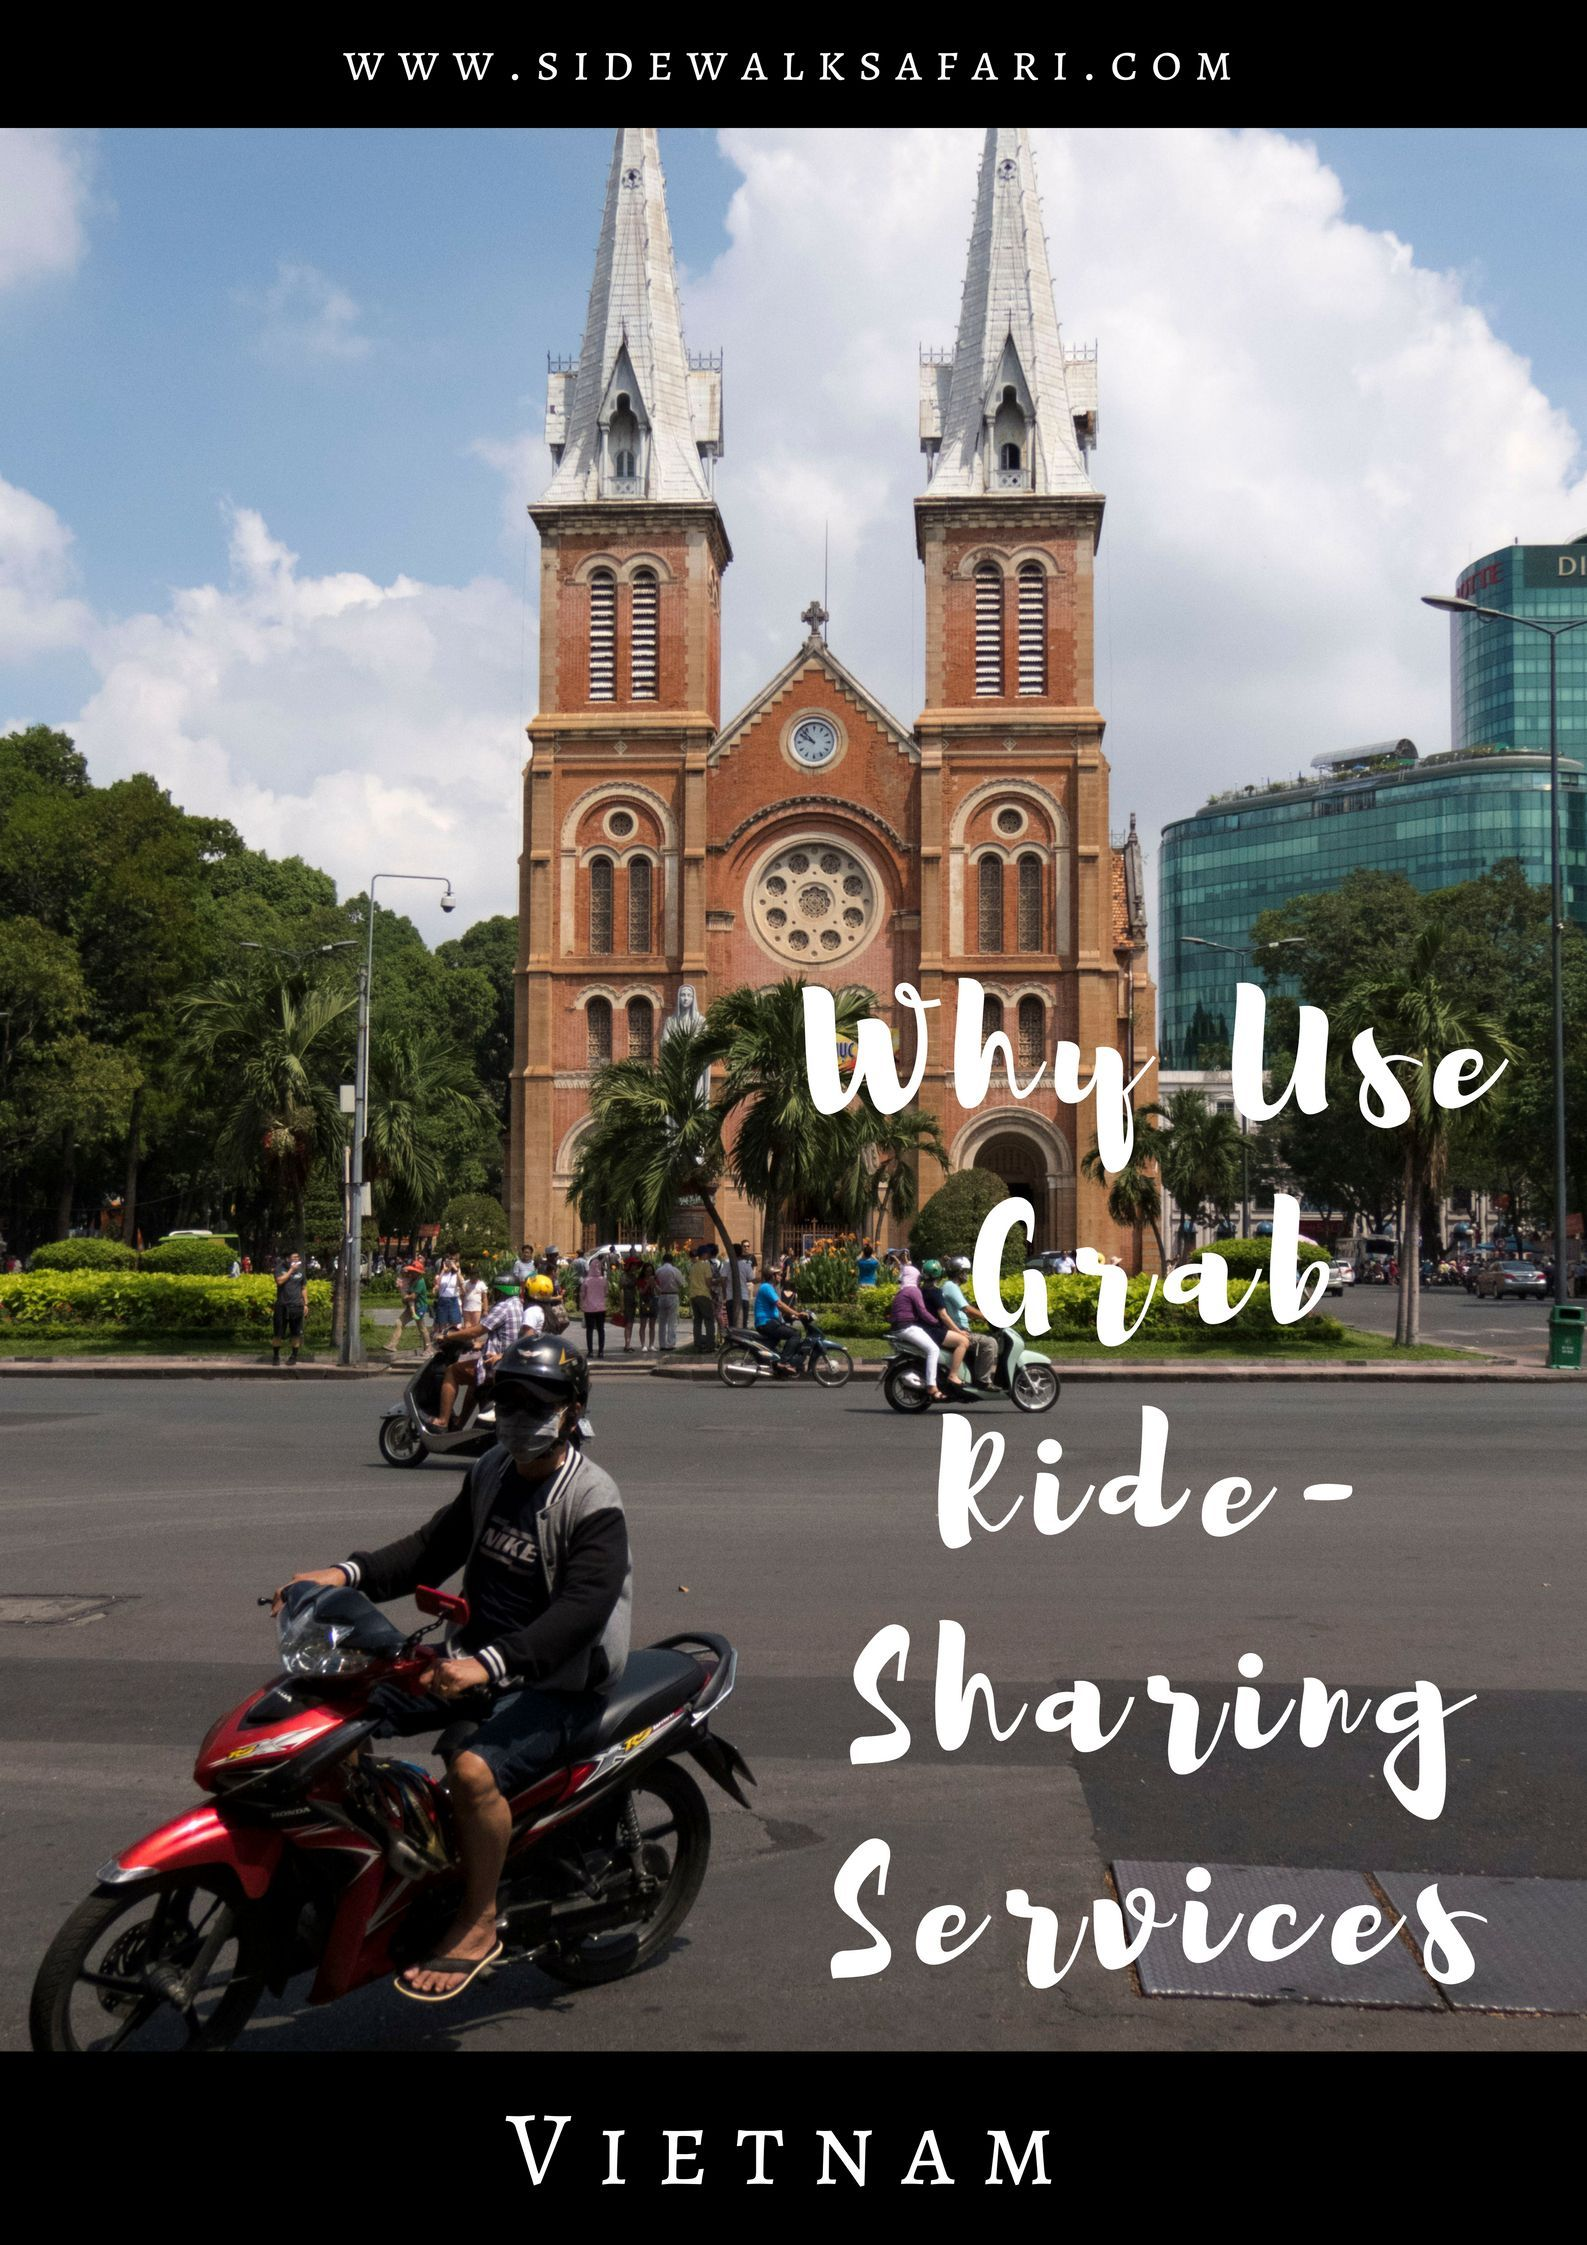 Using Grab in Vietnam: Why Ride Hailing Services are Game